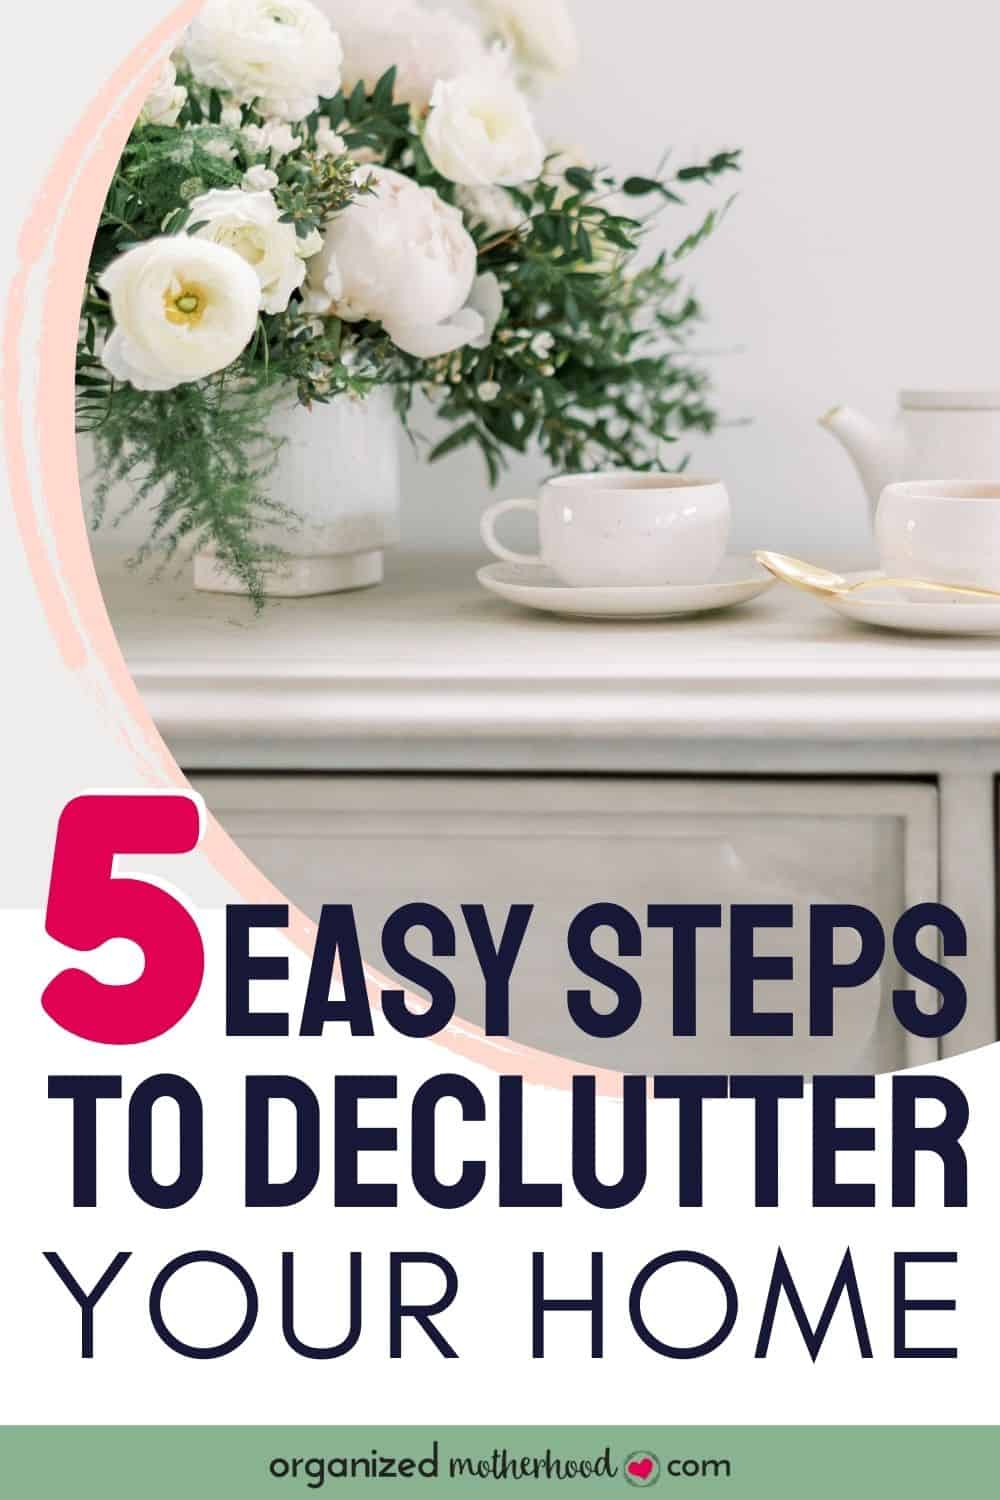 5 easy steps to declutter your home